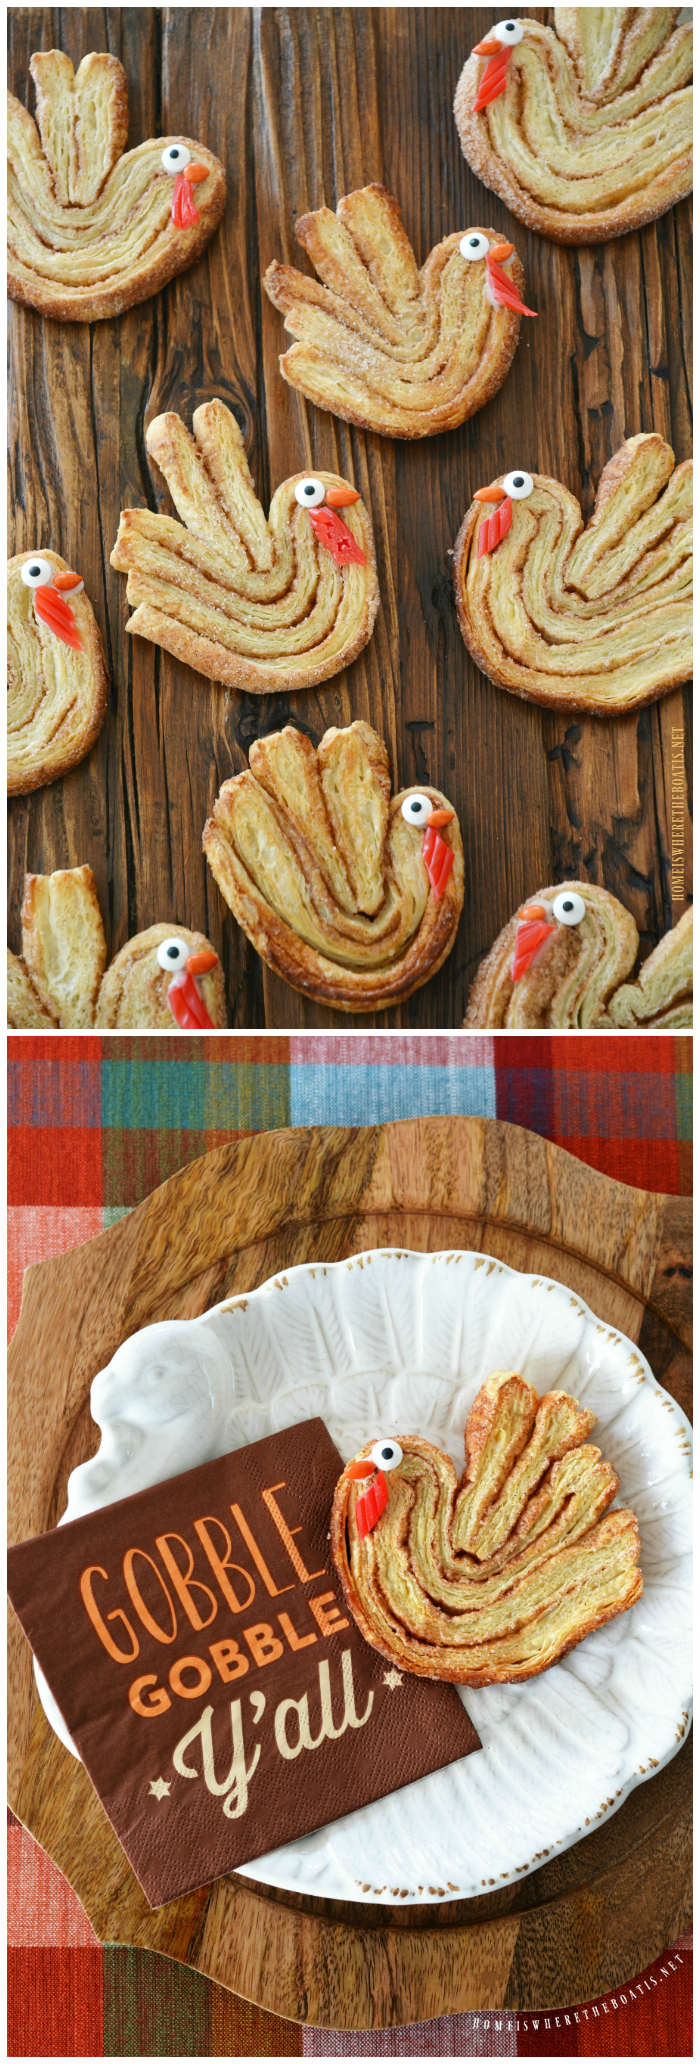 Cinnamon-Sugar Puff Pastry Turkeys! | ©homeiswheretheboatis.net #palmiers #Thanksgiving #turkey #cookies